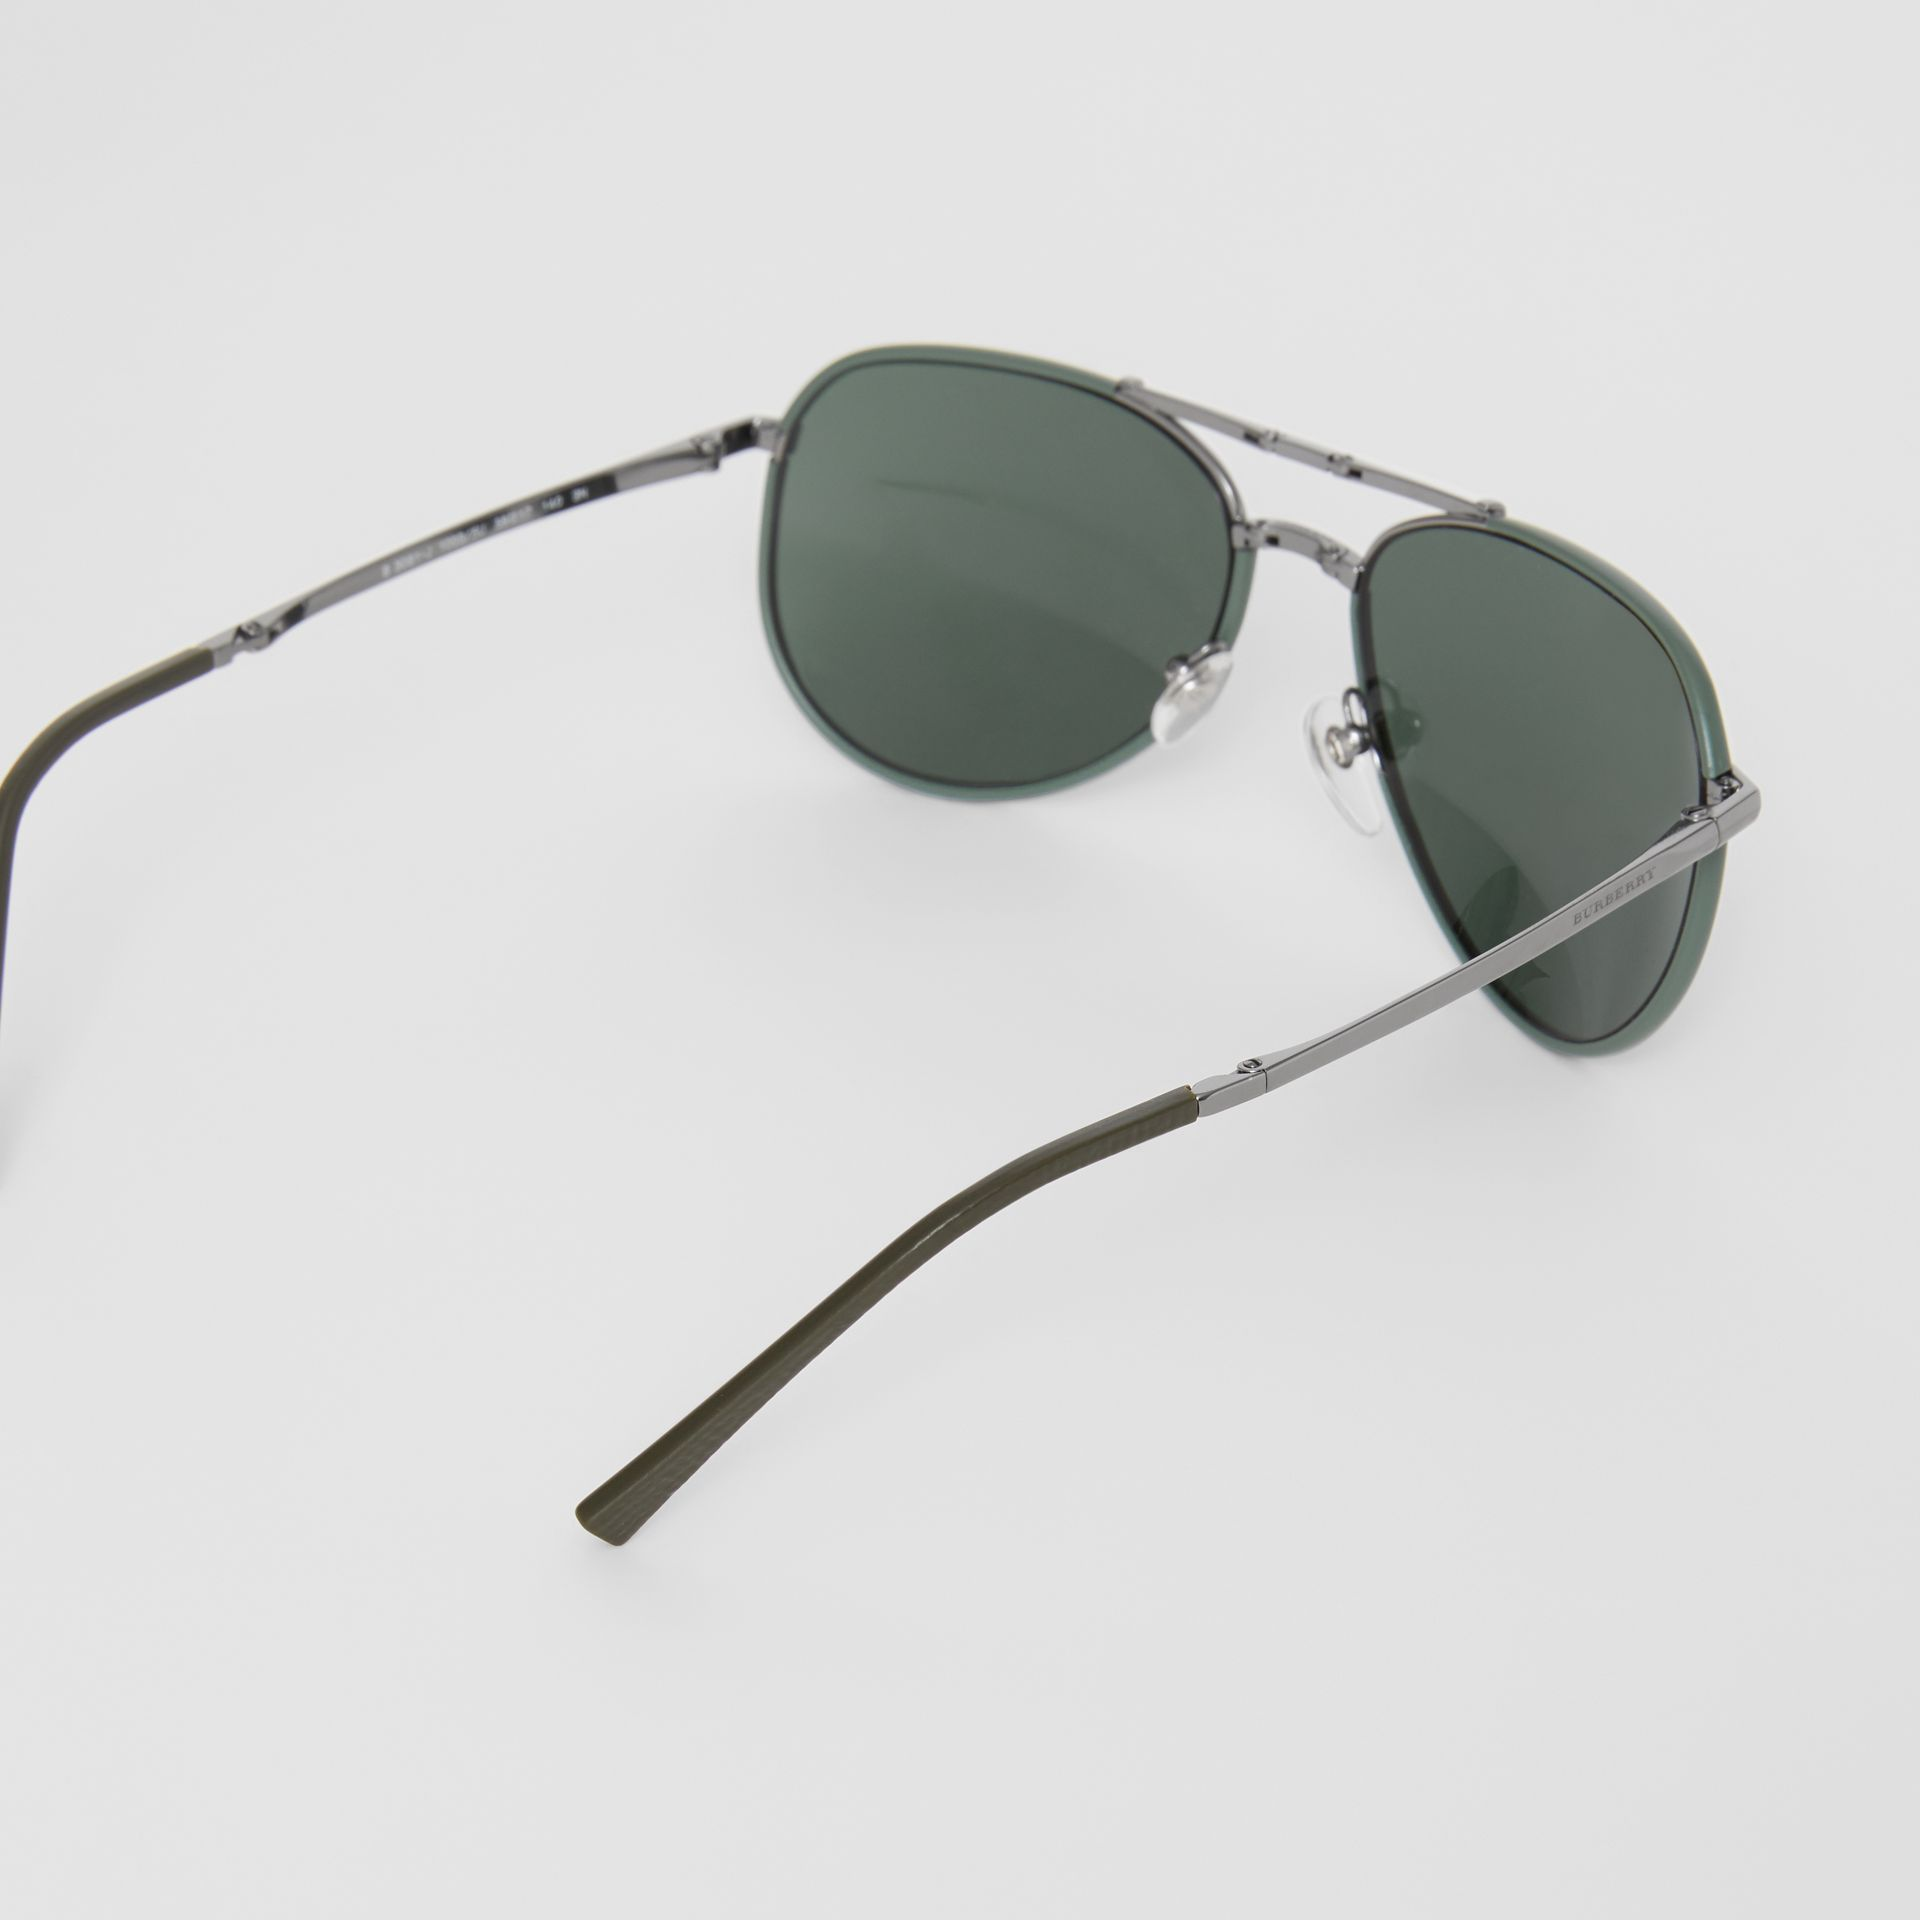 Folding Pilot Sunglasses in Dark Olive - Men | Burberry - gallery image 4